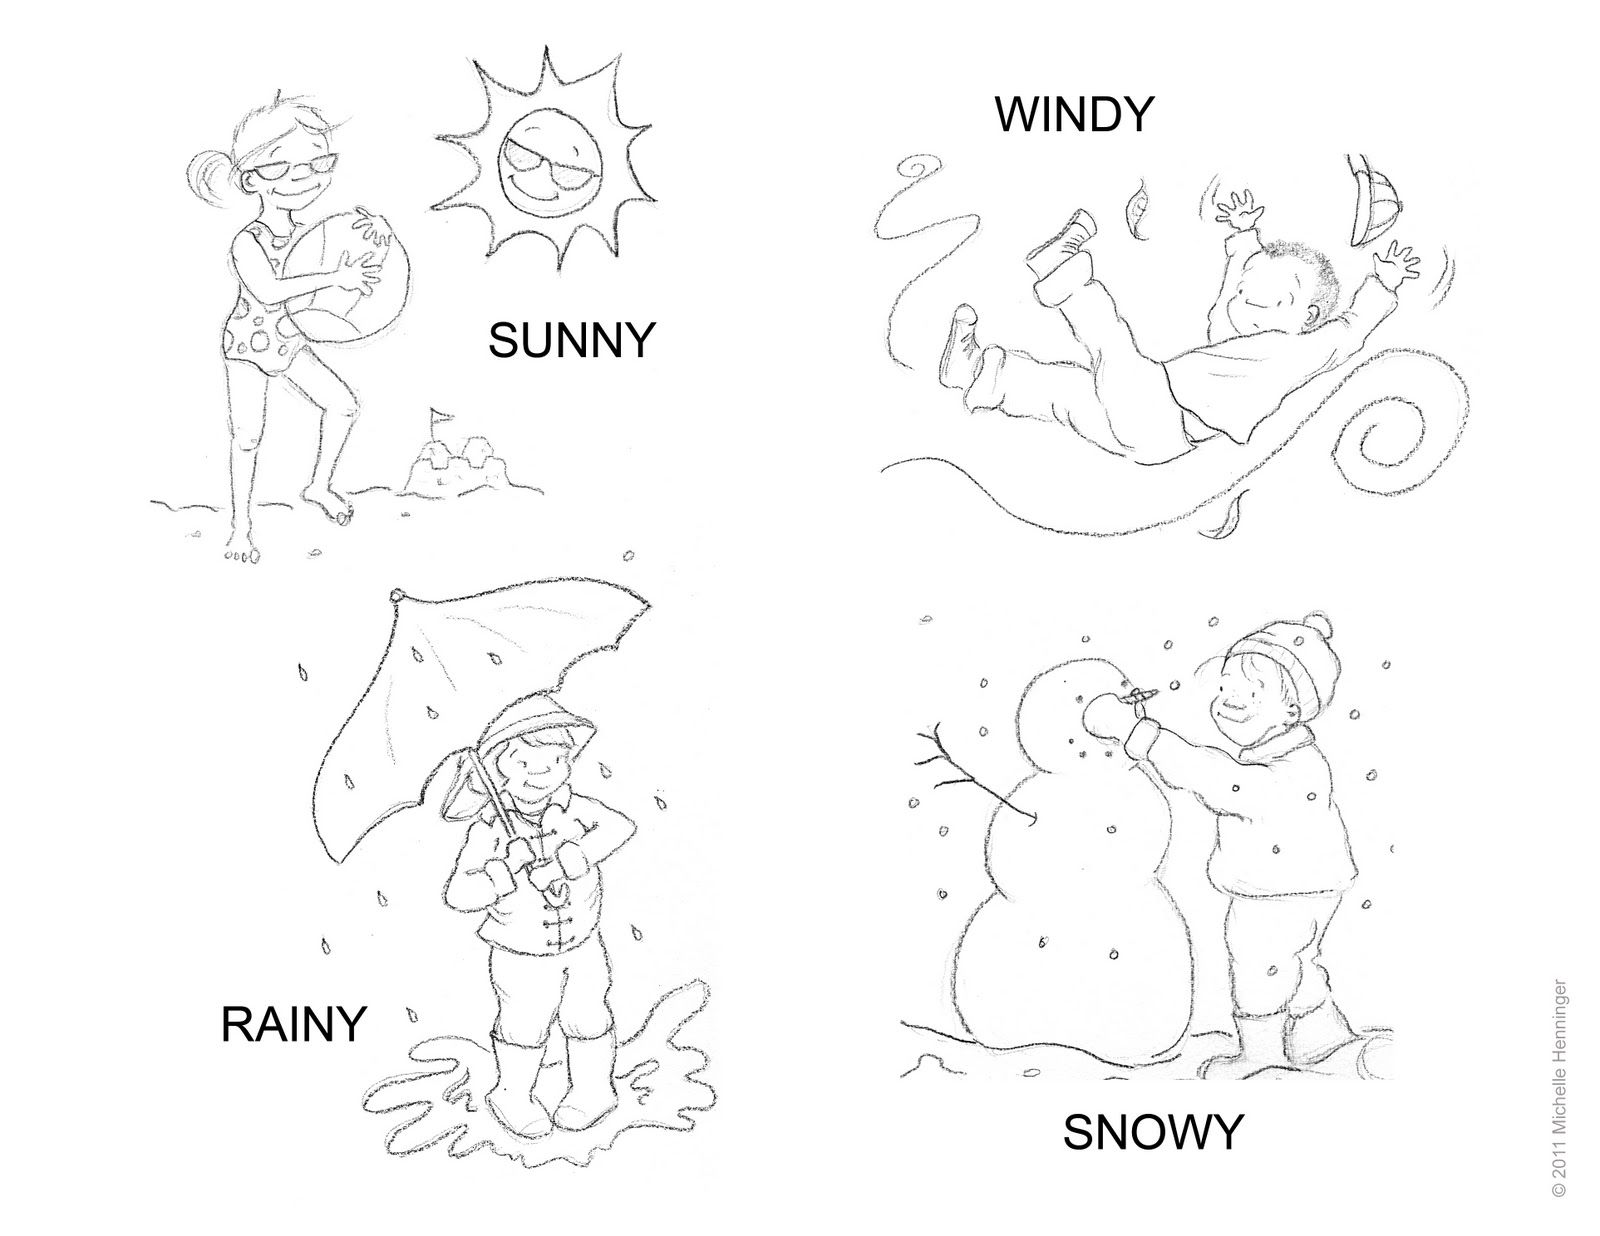 Sunny Weather Coloring Pages At Getdrawings